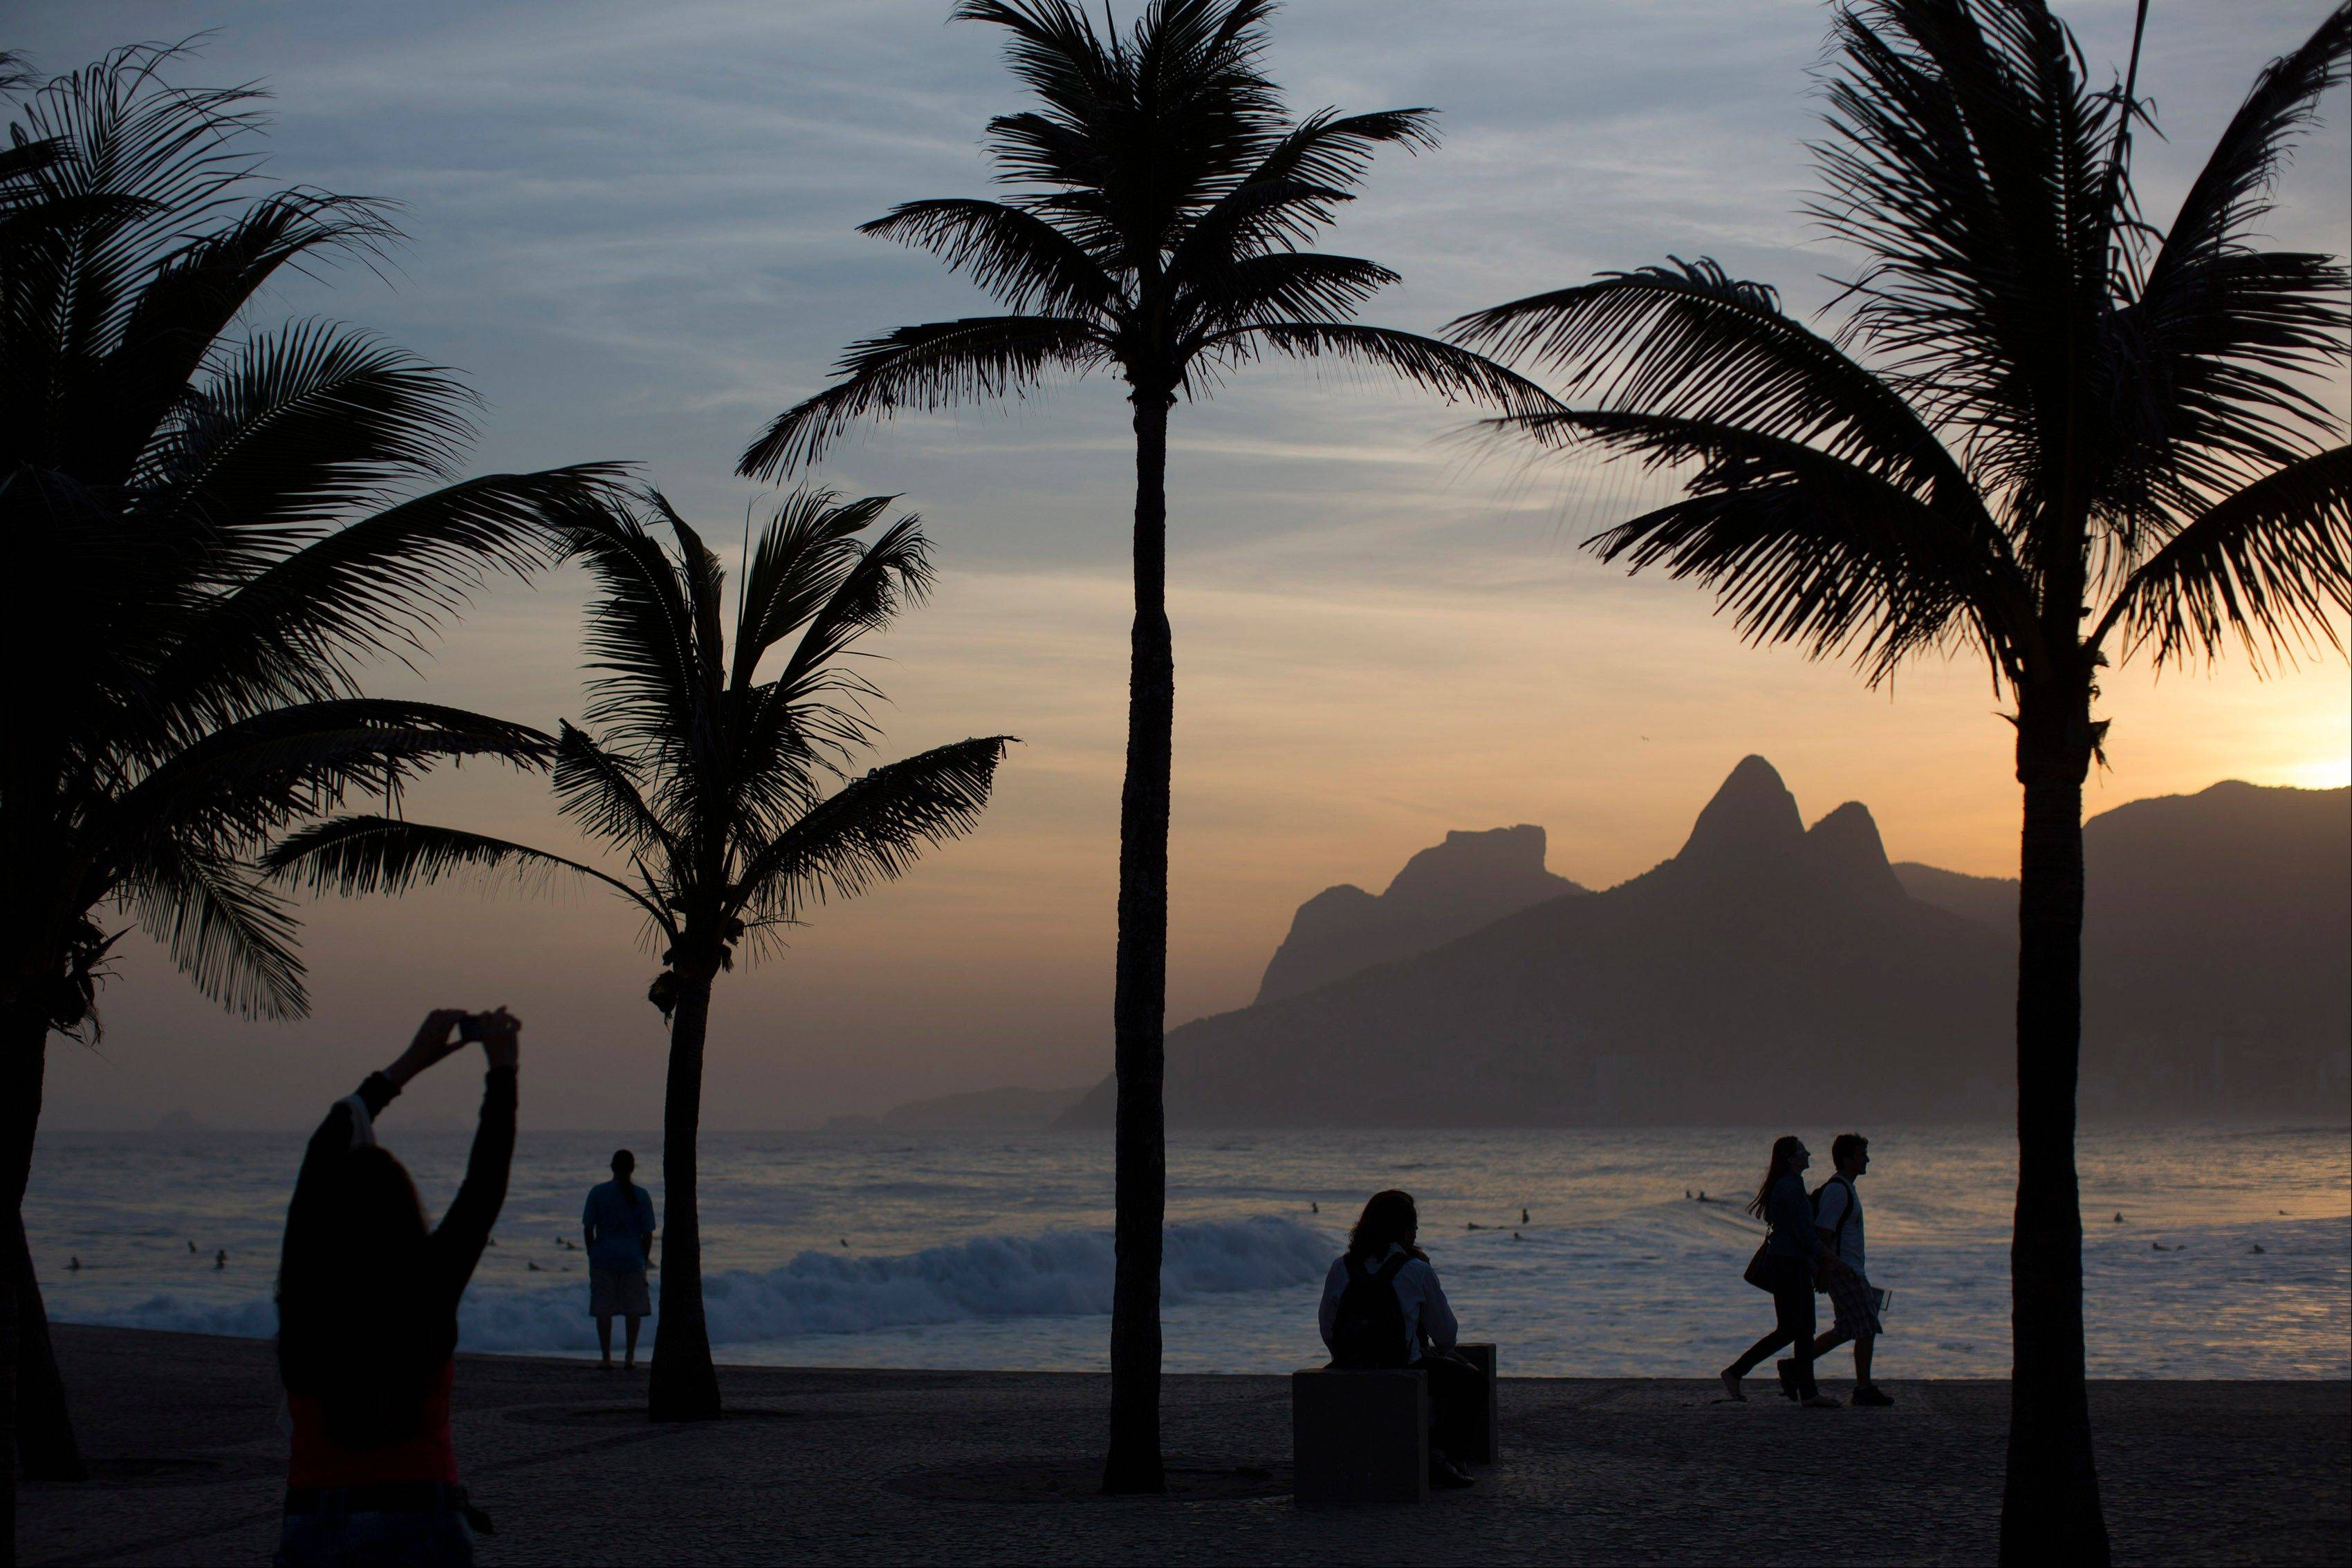 The sunset at Arpoador beach in Rio de Janeiro, Brazil. Rio boasts some of the world's most stunning urban beaches and they're worth several visits.